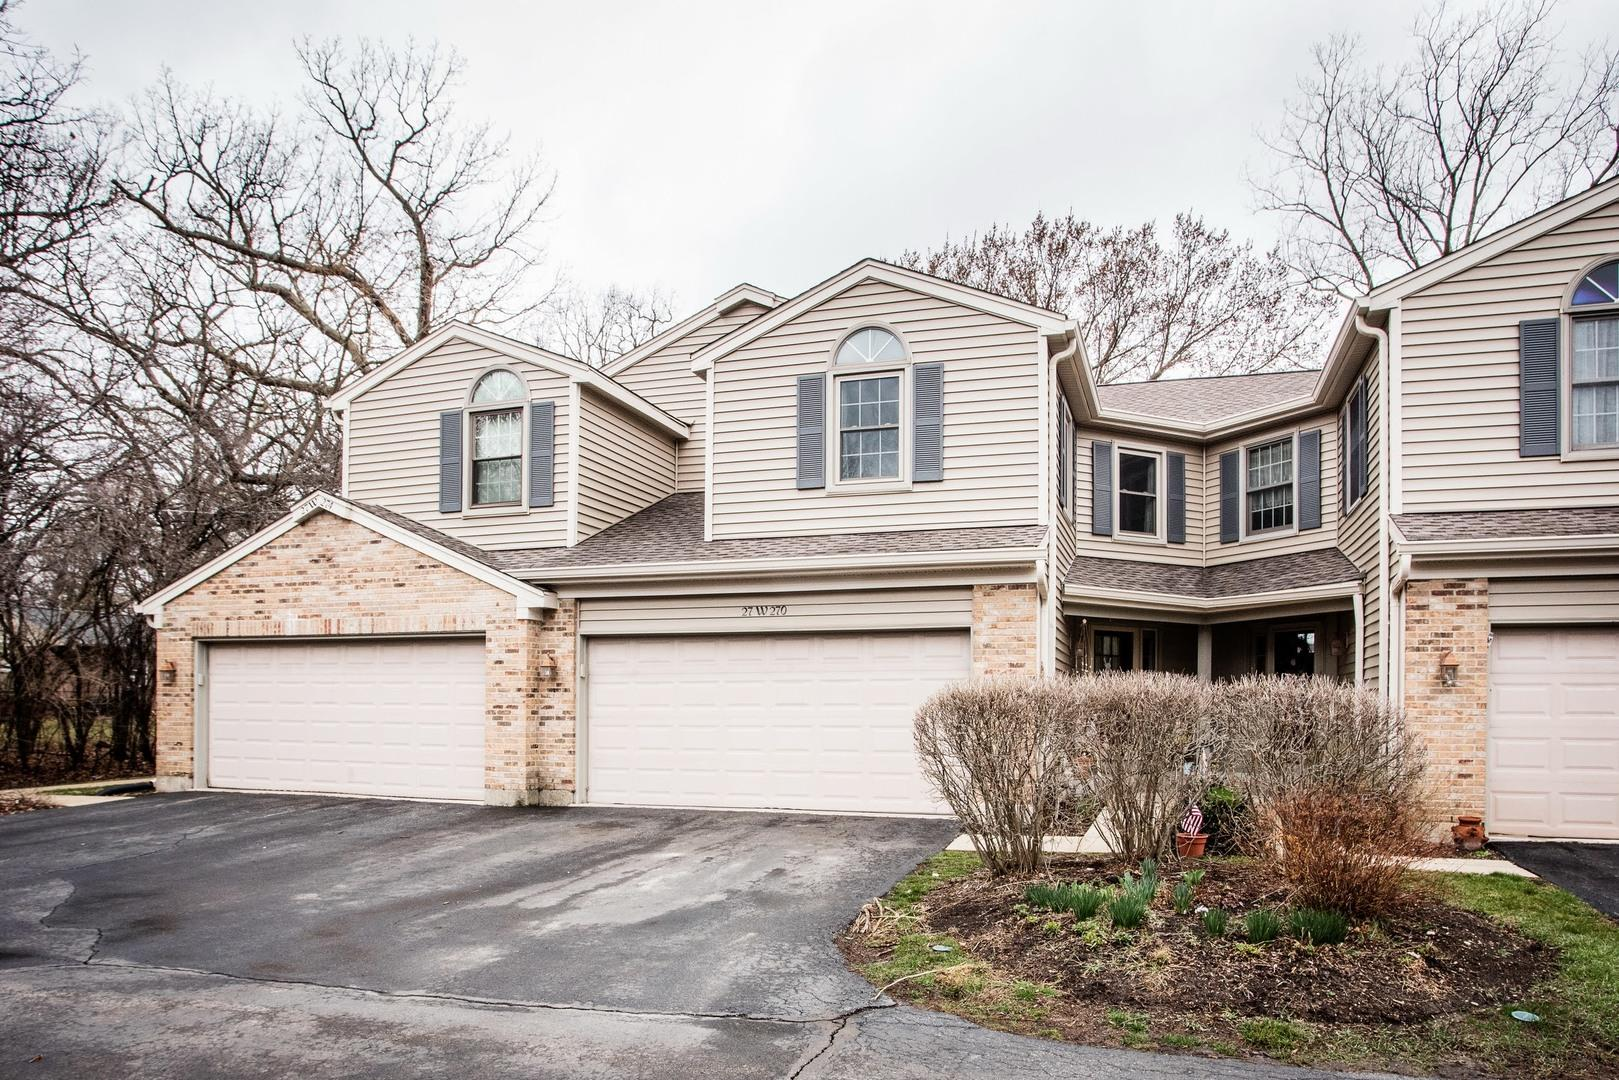 27W270 Jefferson Court #270, Winfield, IL 60190 - #: 11035244